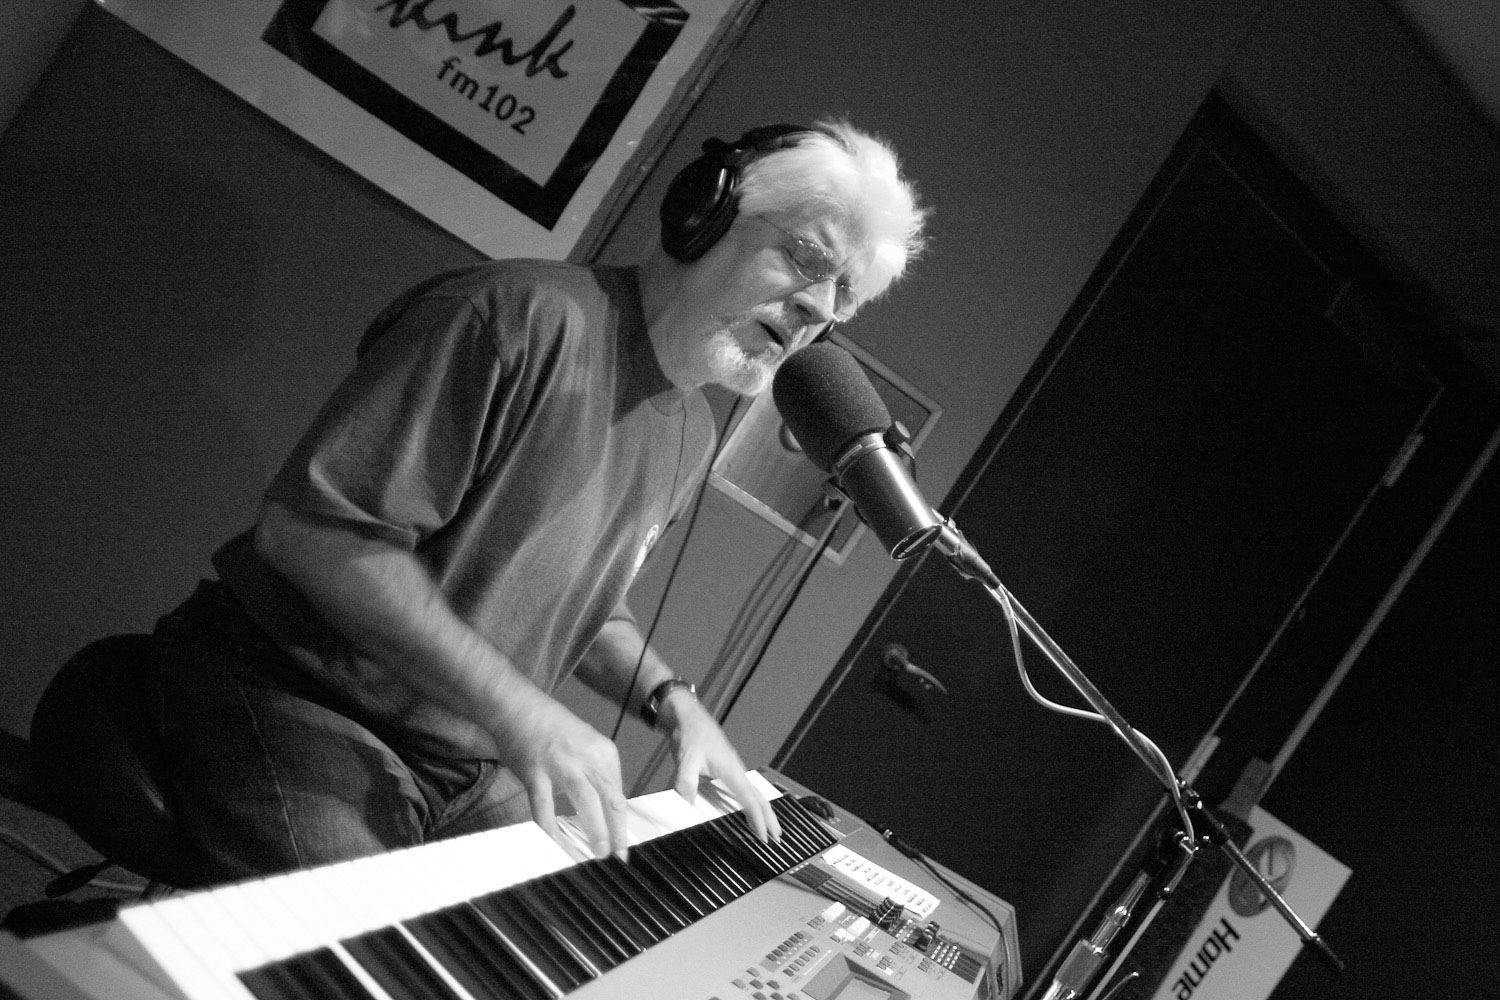 Michael McDonald sings in the sound studio at KINK fm 101.9.